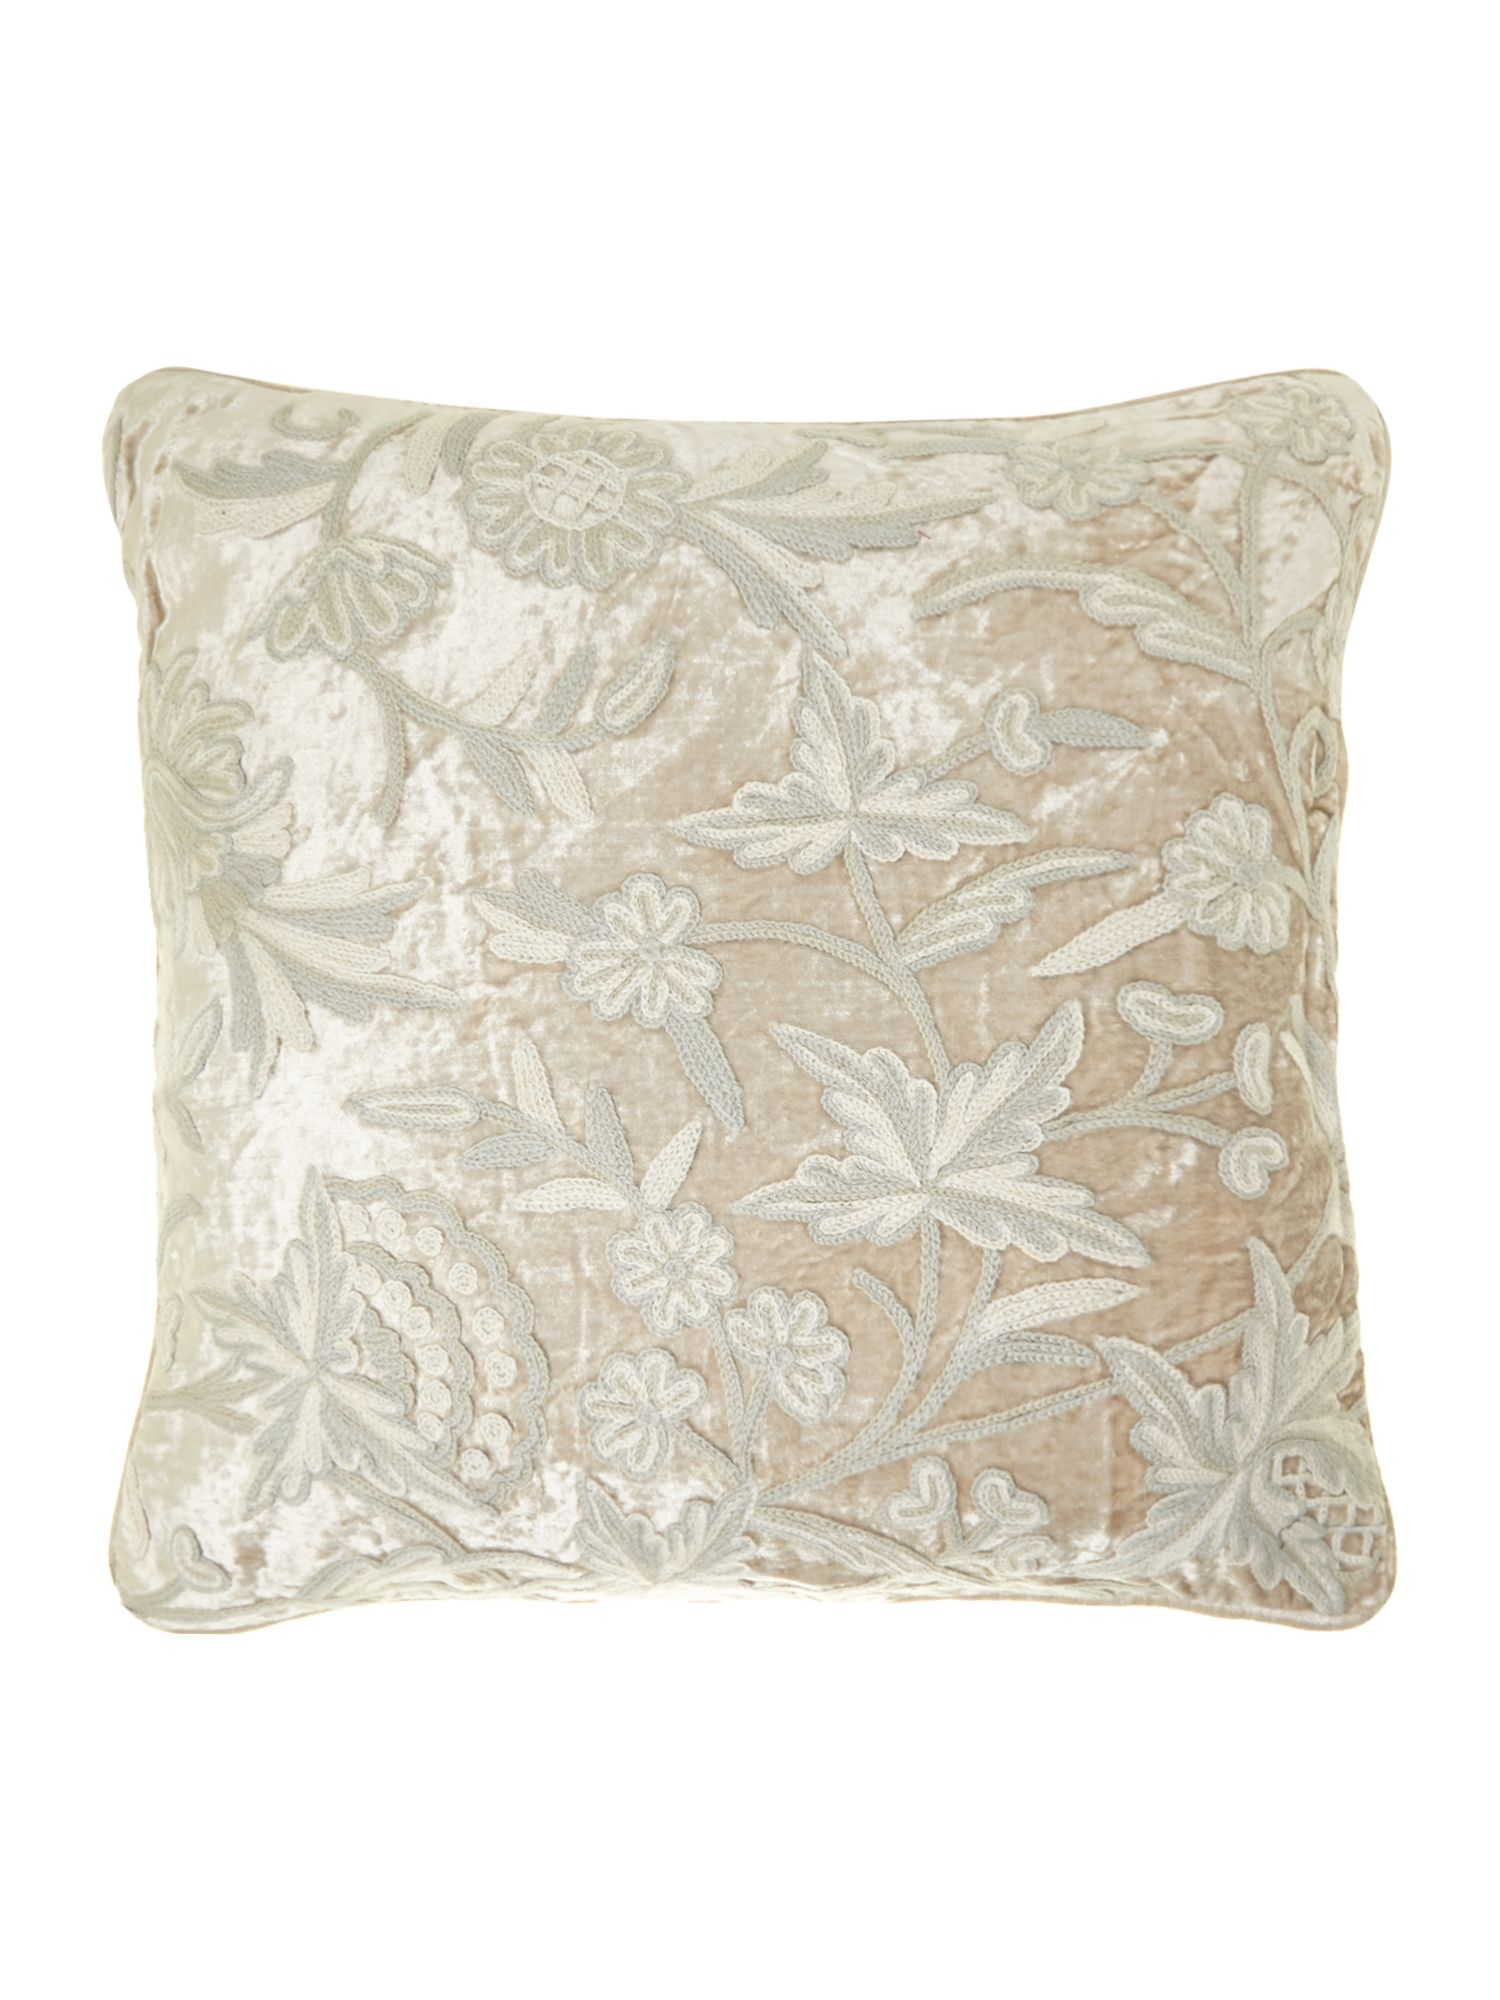 Dorothia cushion